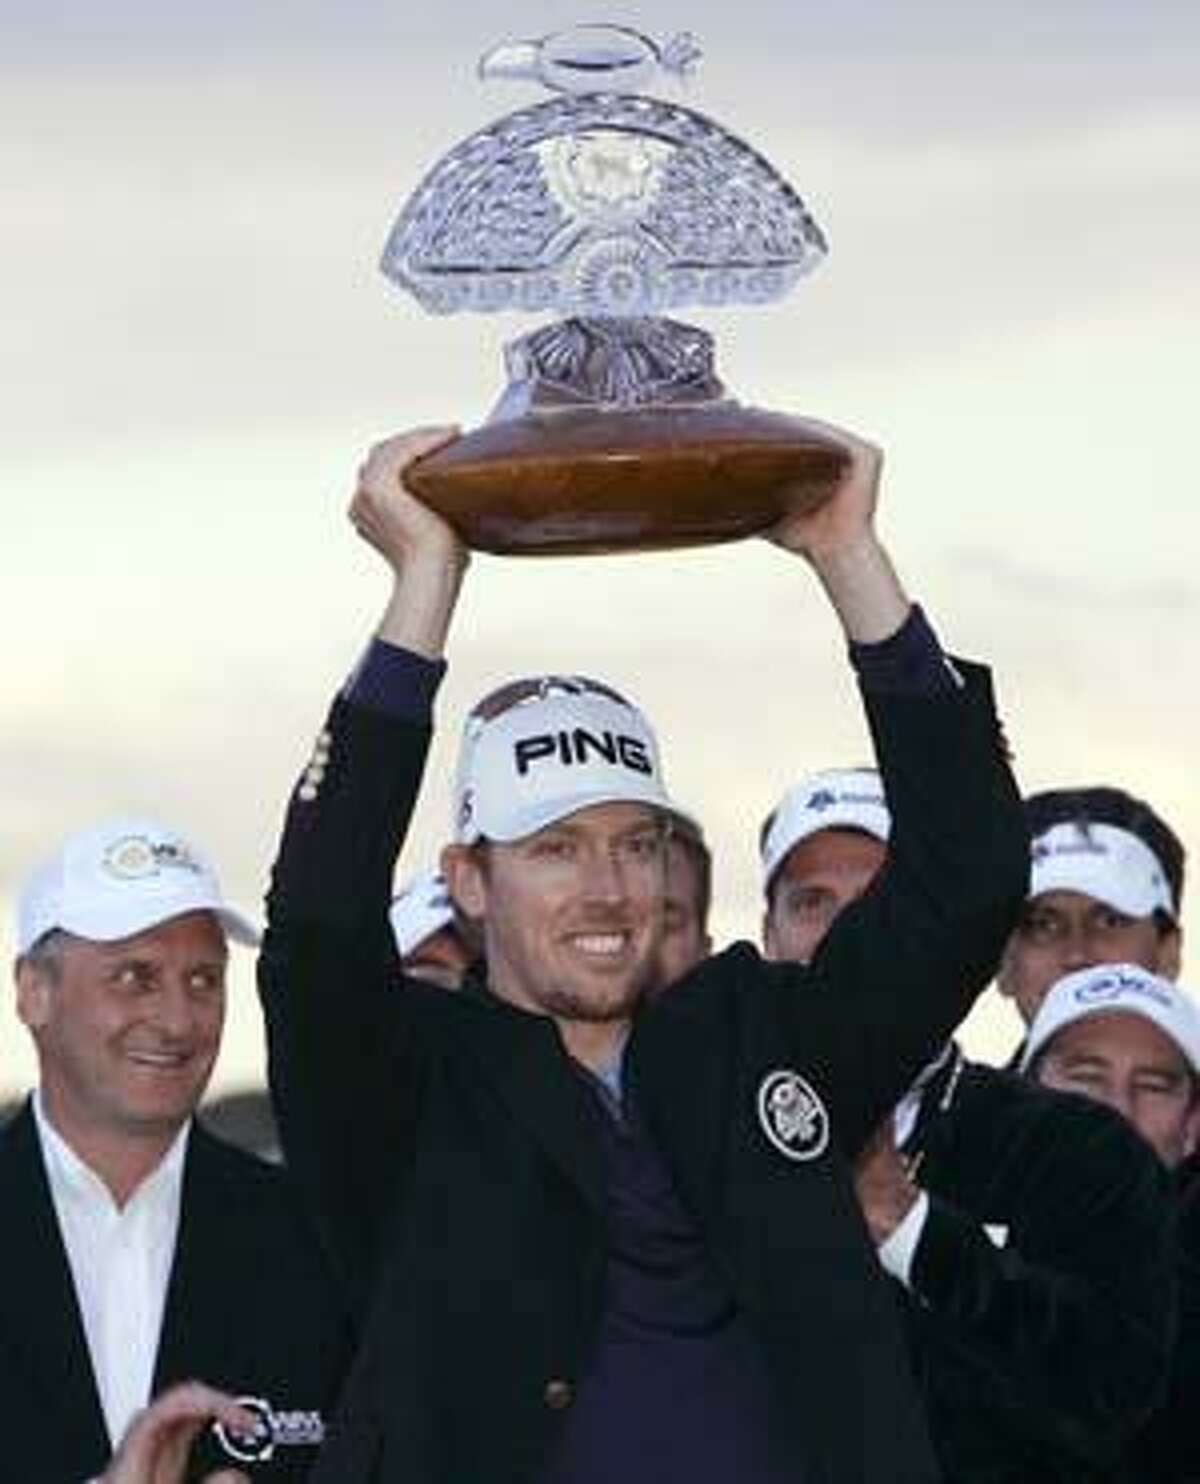 AP Phoenix Open champion Hunter Mahan holds the winner's trophy after the final round of the golf tournament Sunday in Scottsdale, Ariz. Mahan finished the tournament at 16-under par, one stroke ahead of Rickie Fowler.